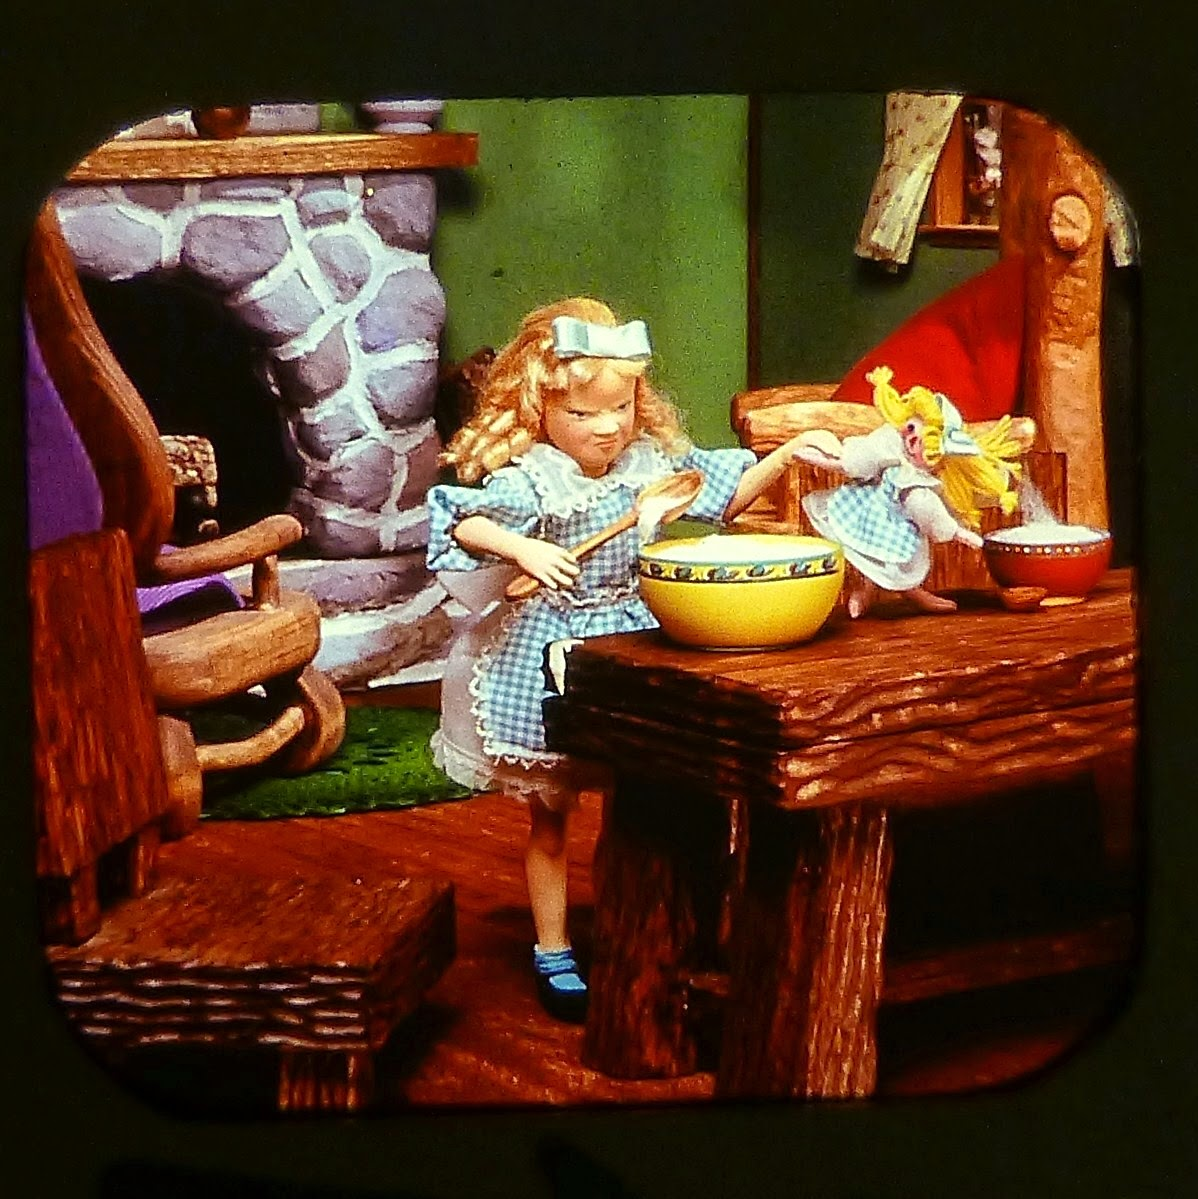 GOLDILOCKS AND THE THREE BEARS VIEW MASTER SCANS